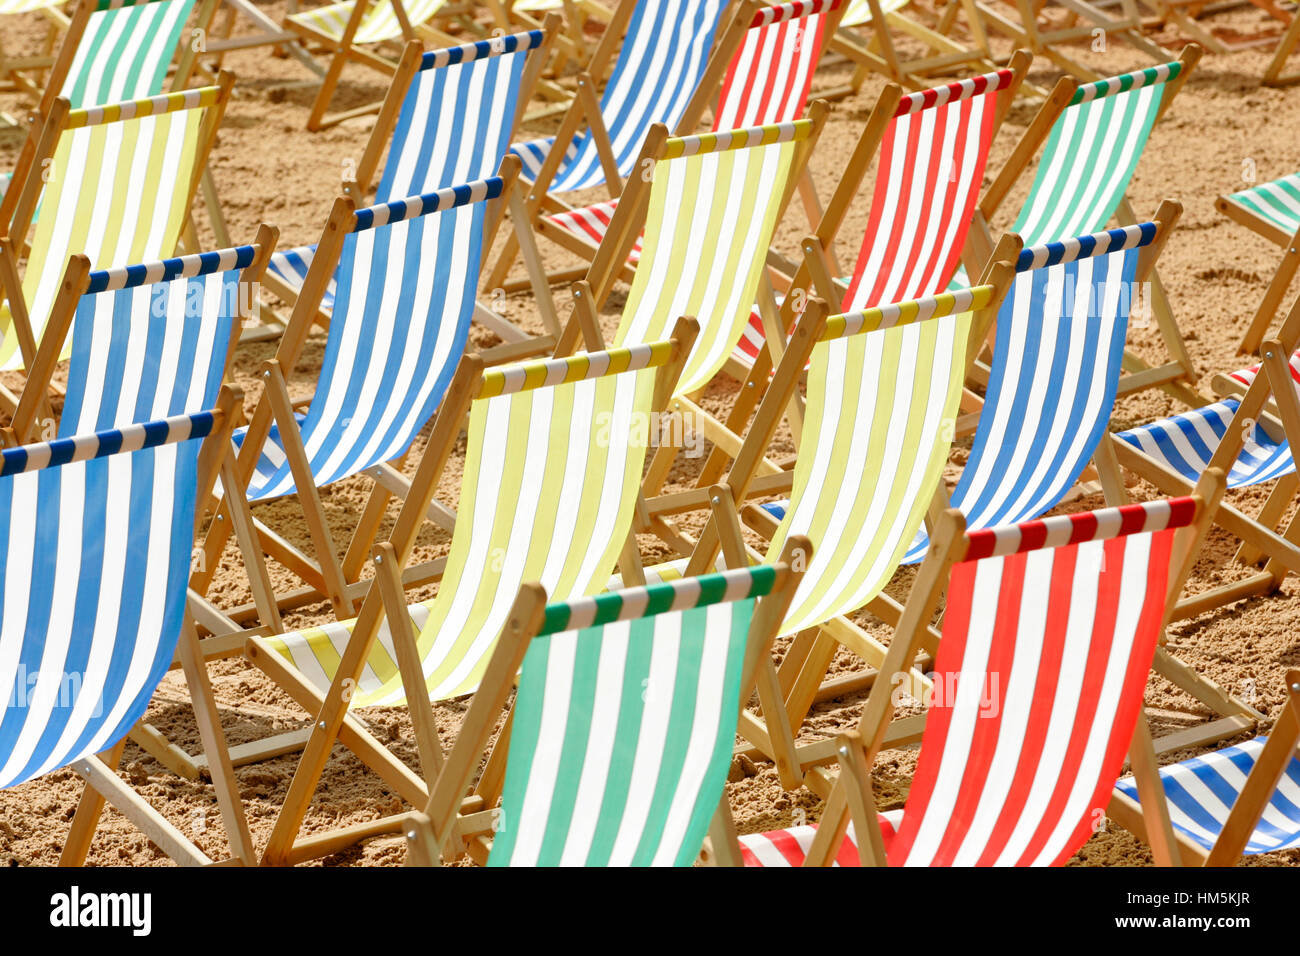 rows-of-empty-deckchairs-in-redyellowgre